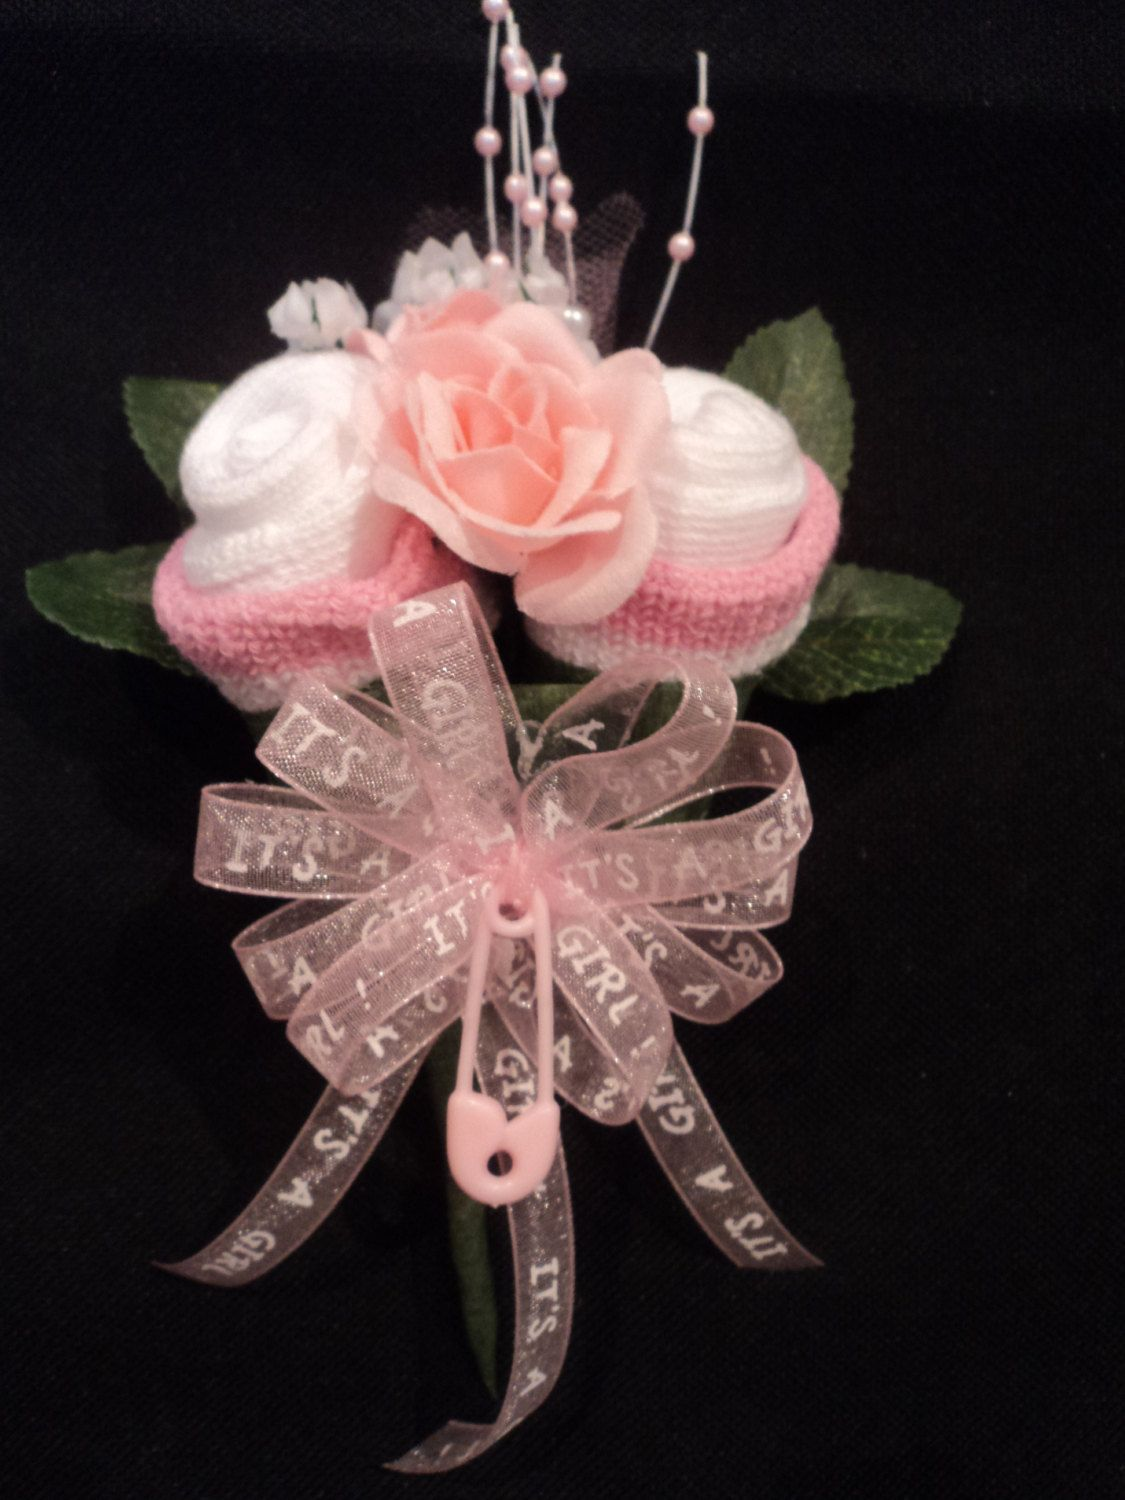 Baby Sock Rose Corsage Baby Shower Gift It S A Boy Or Girl Ribbon 10 99 Via Etsy Baby Shower Corsage Baby Shower Gifts Baby Sock Corsage